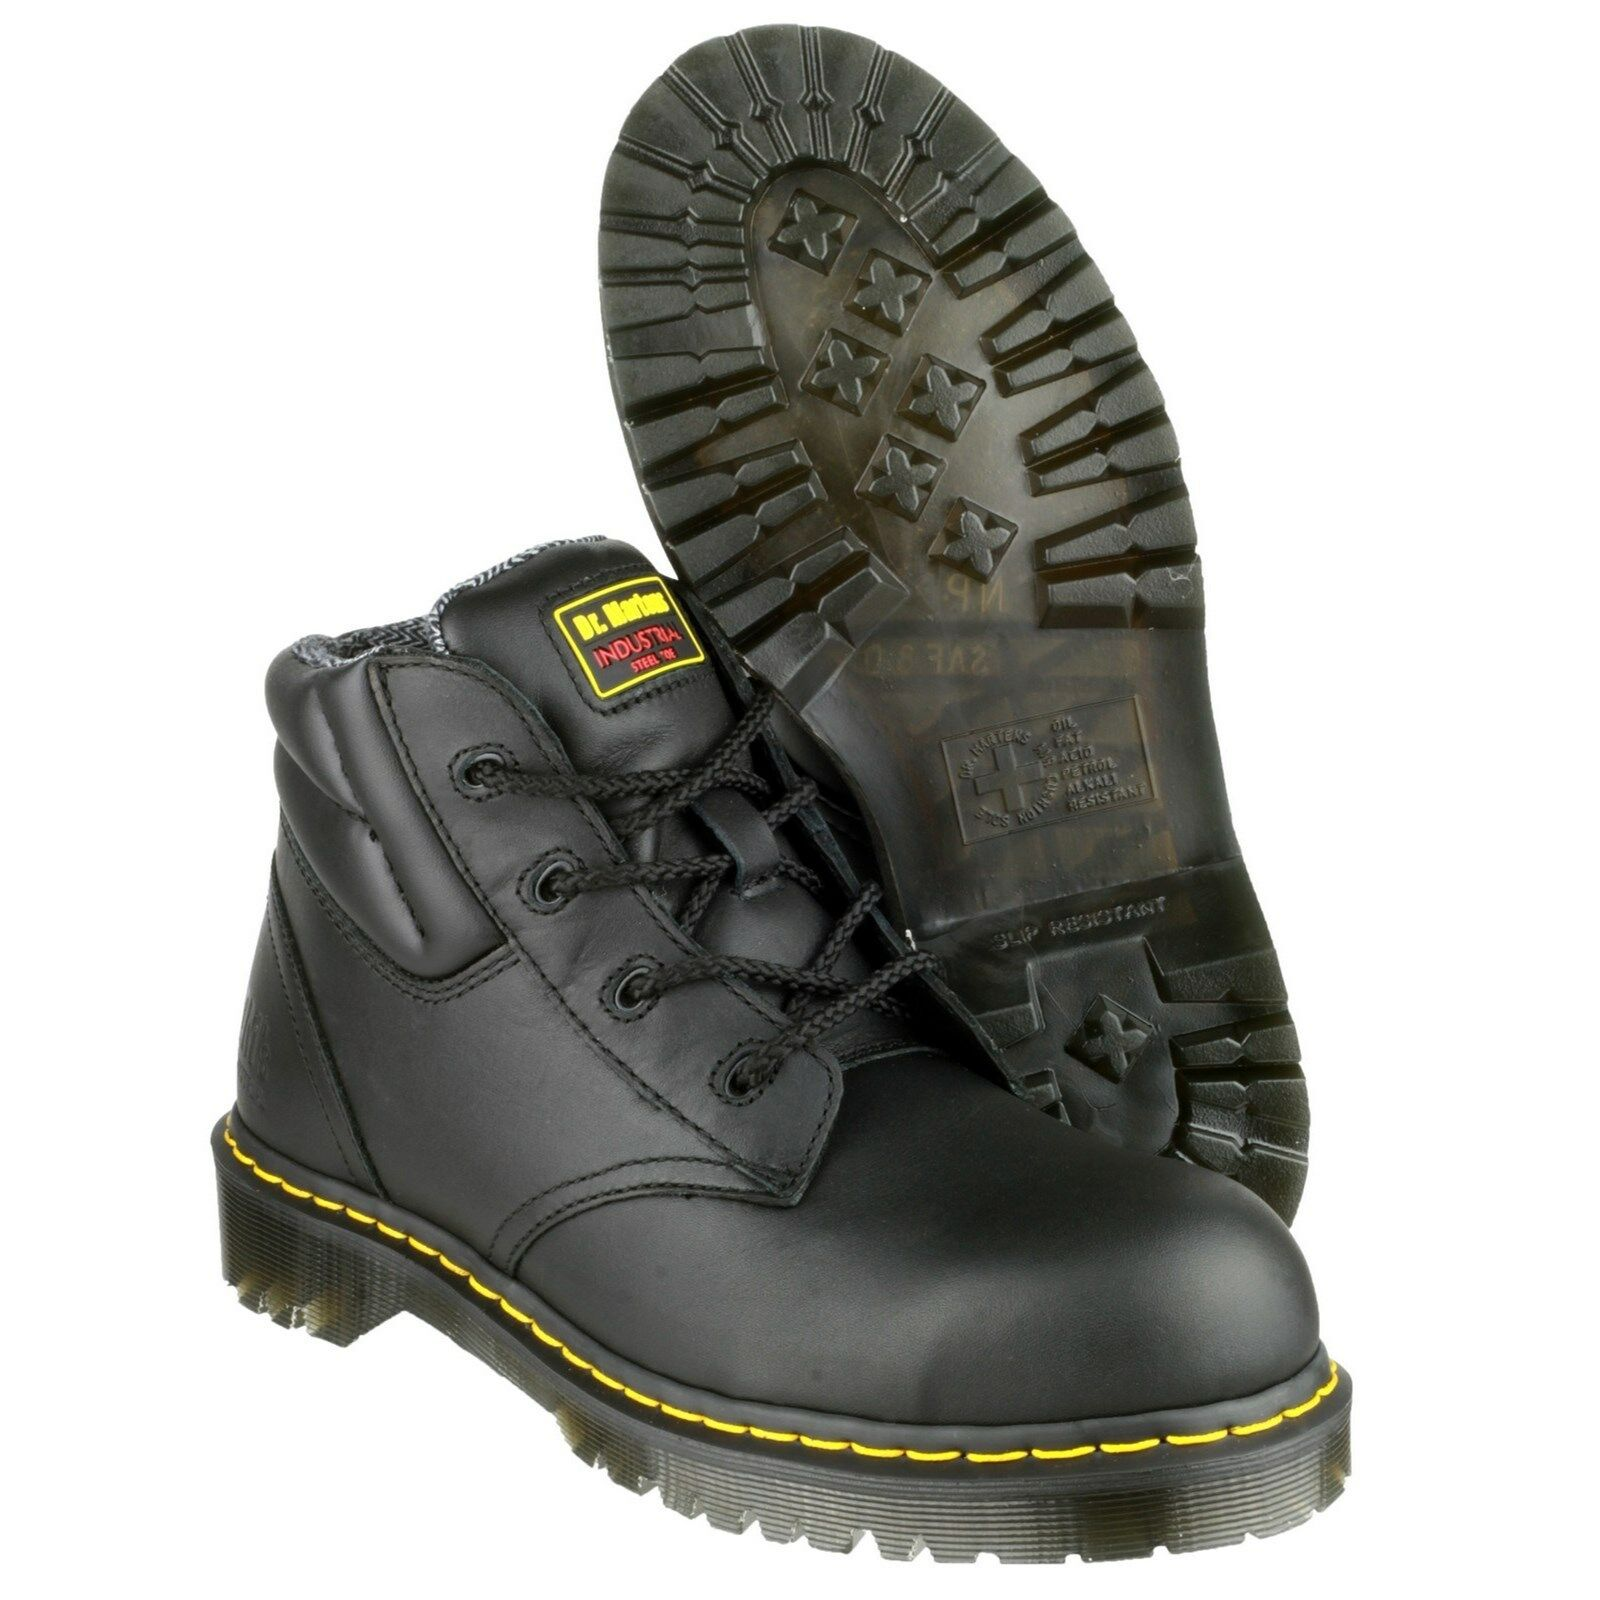 Dr Martens FS20Z Safety Stiefel Industrial Leather Steel Toe Cap Mens Work schuhe